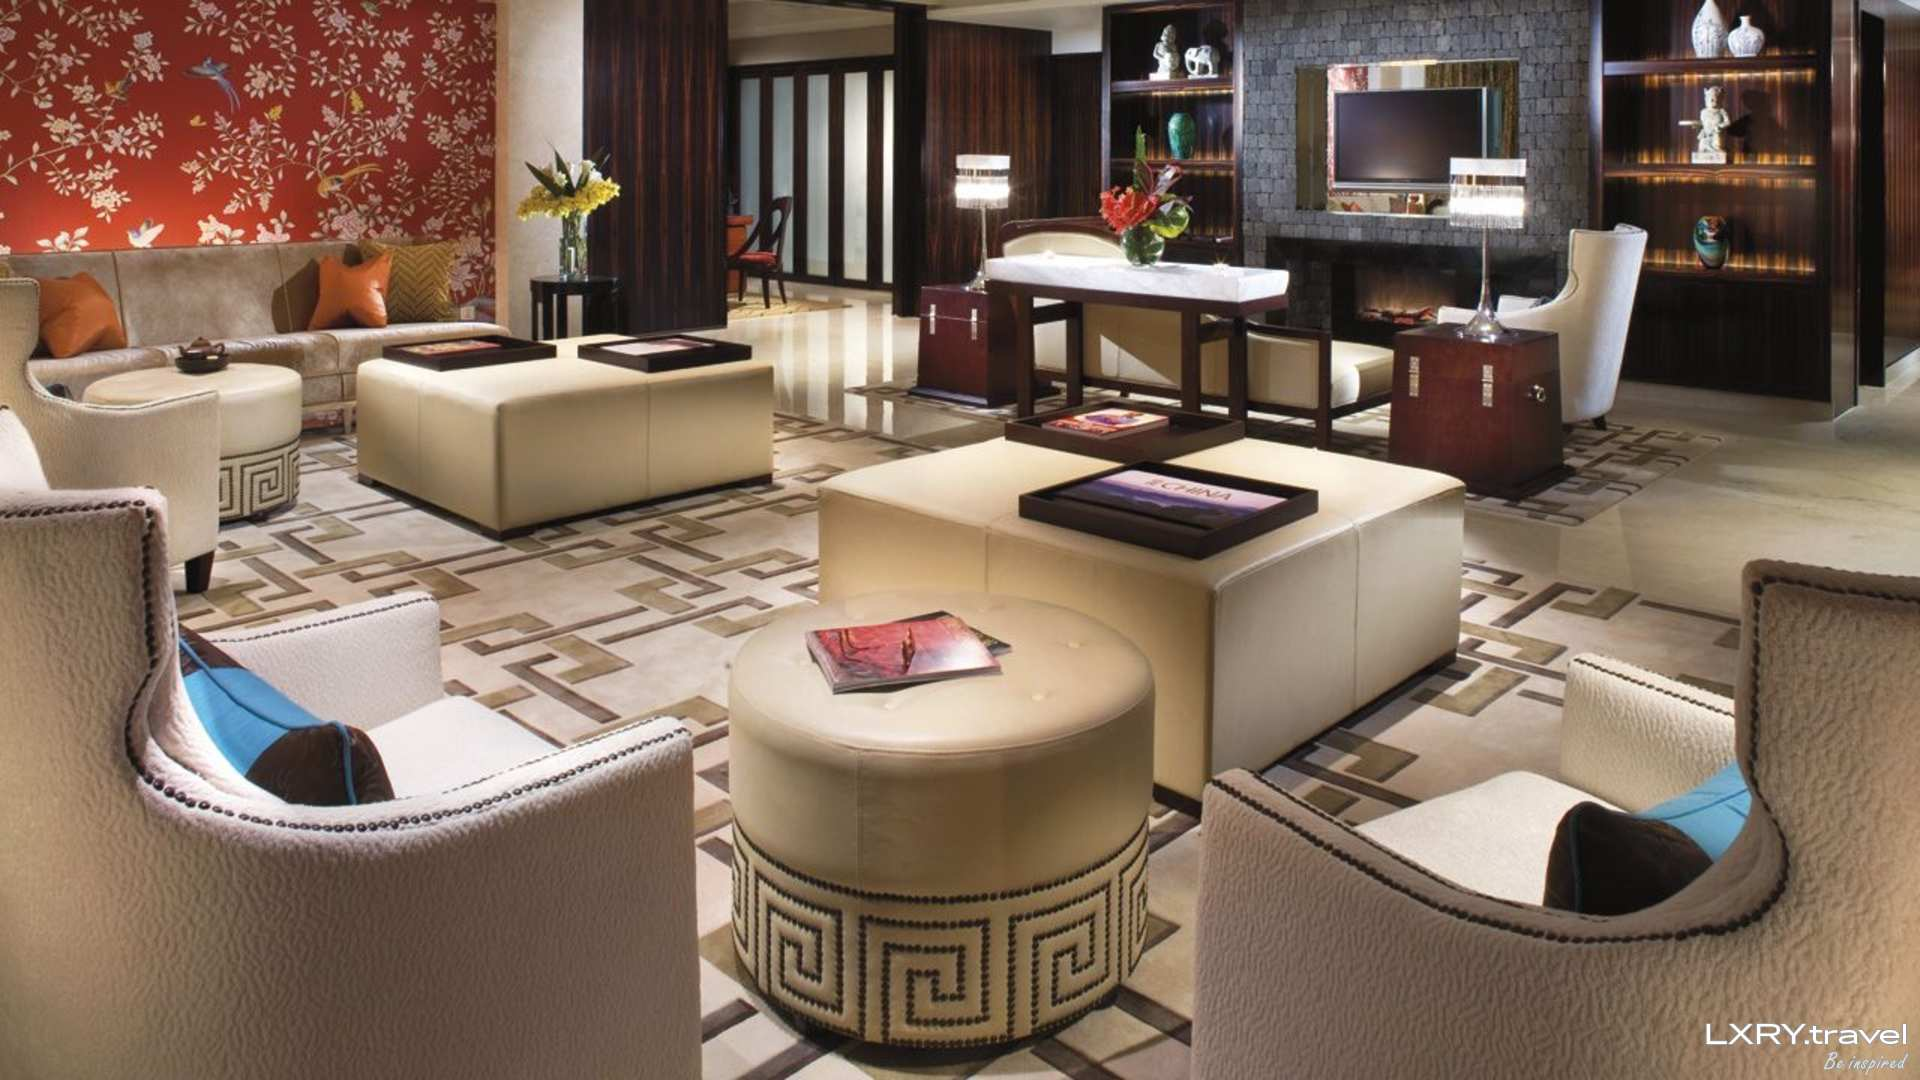 The Portman Ritz-Carlton Shanghai 12/34